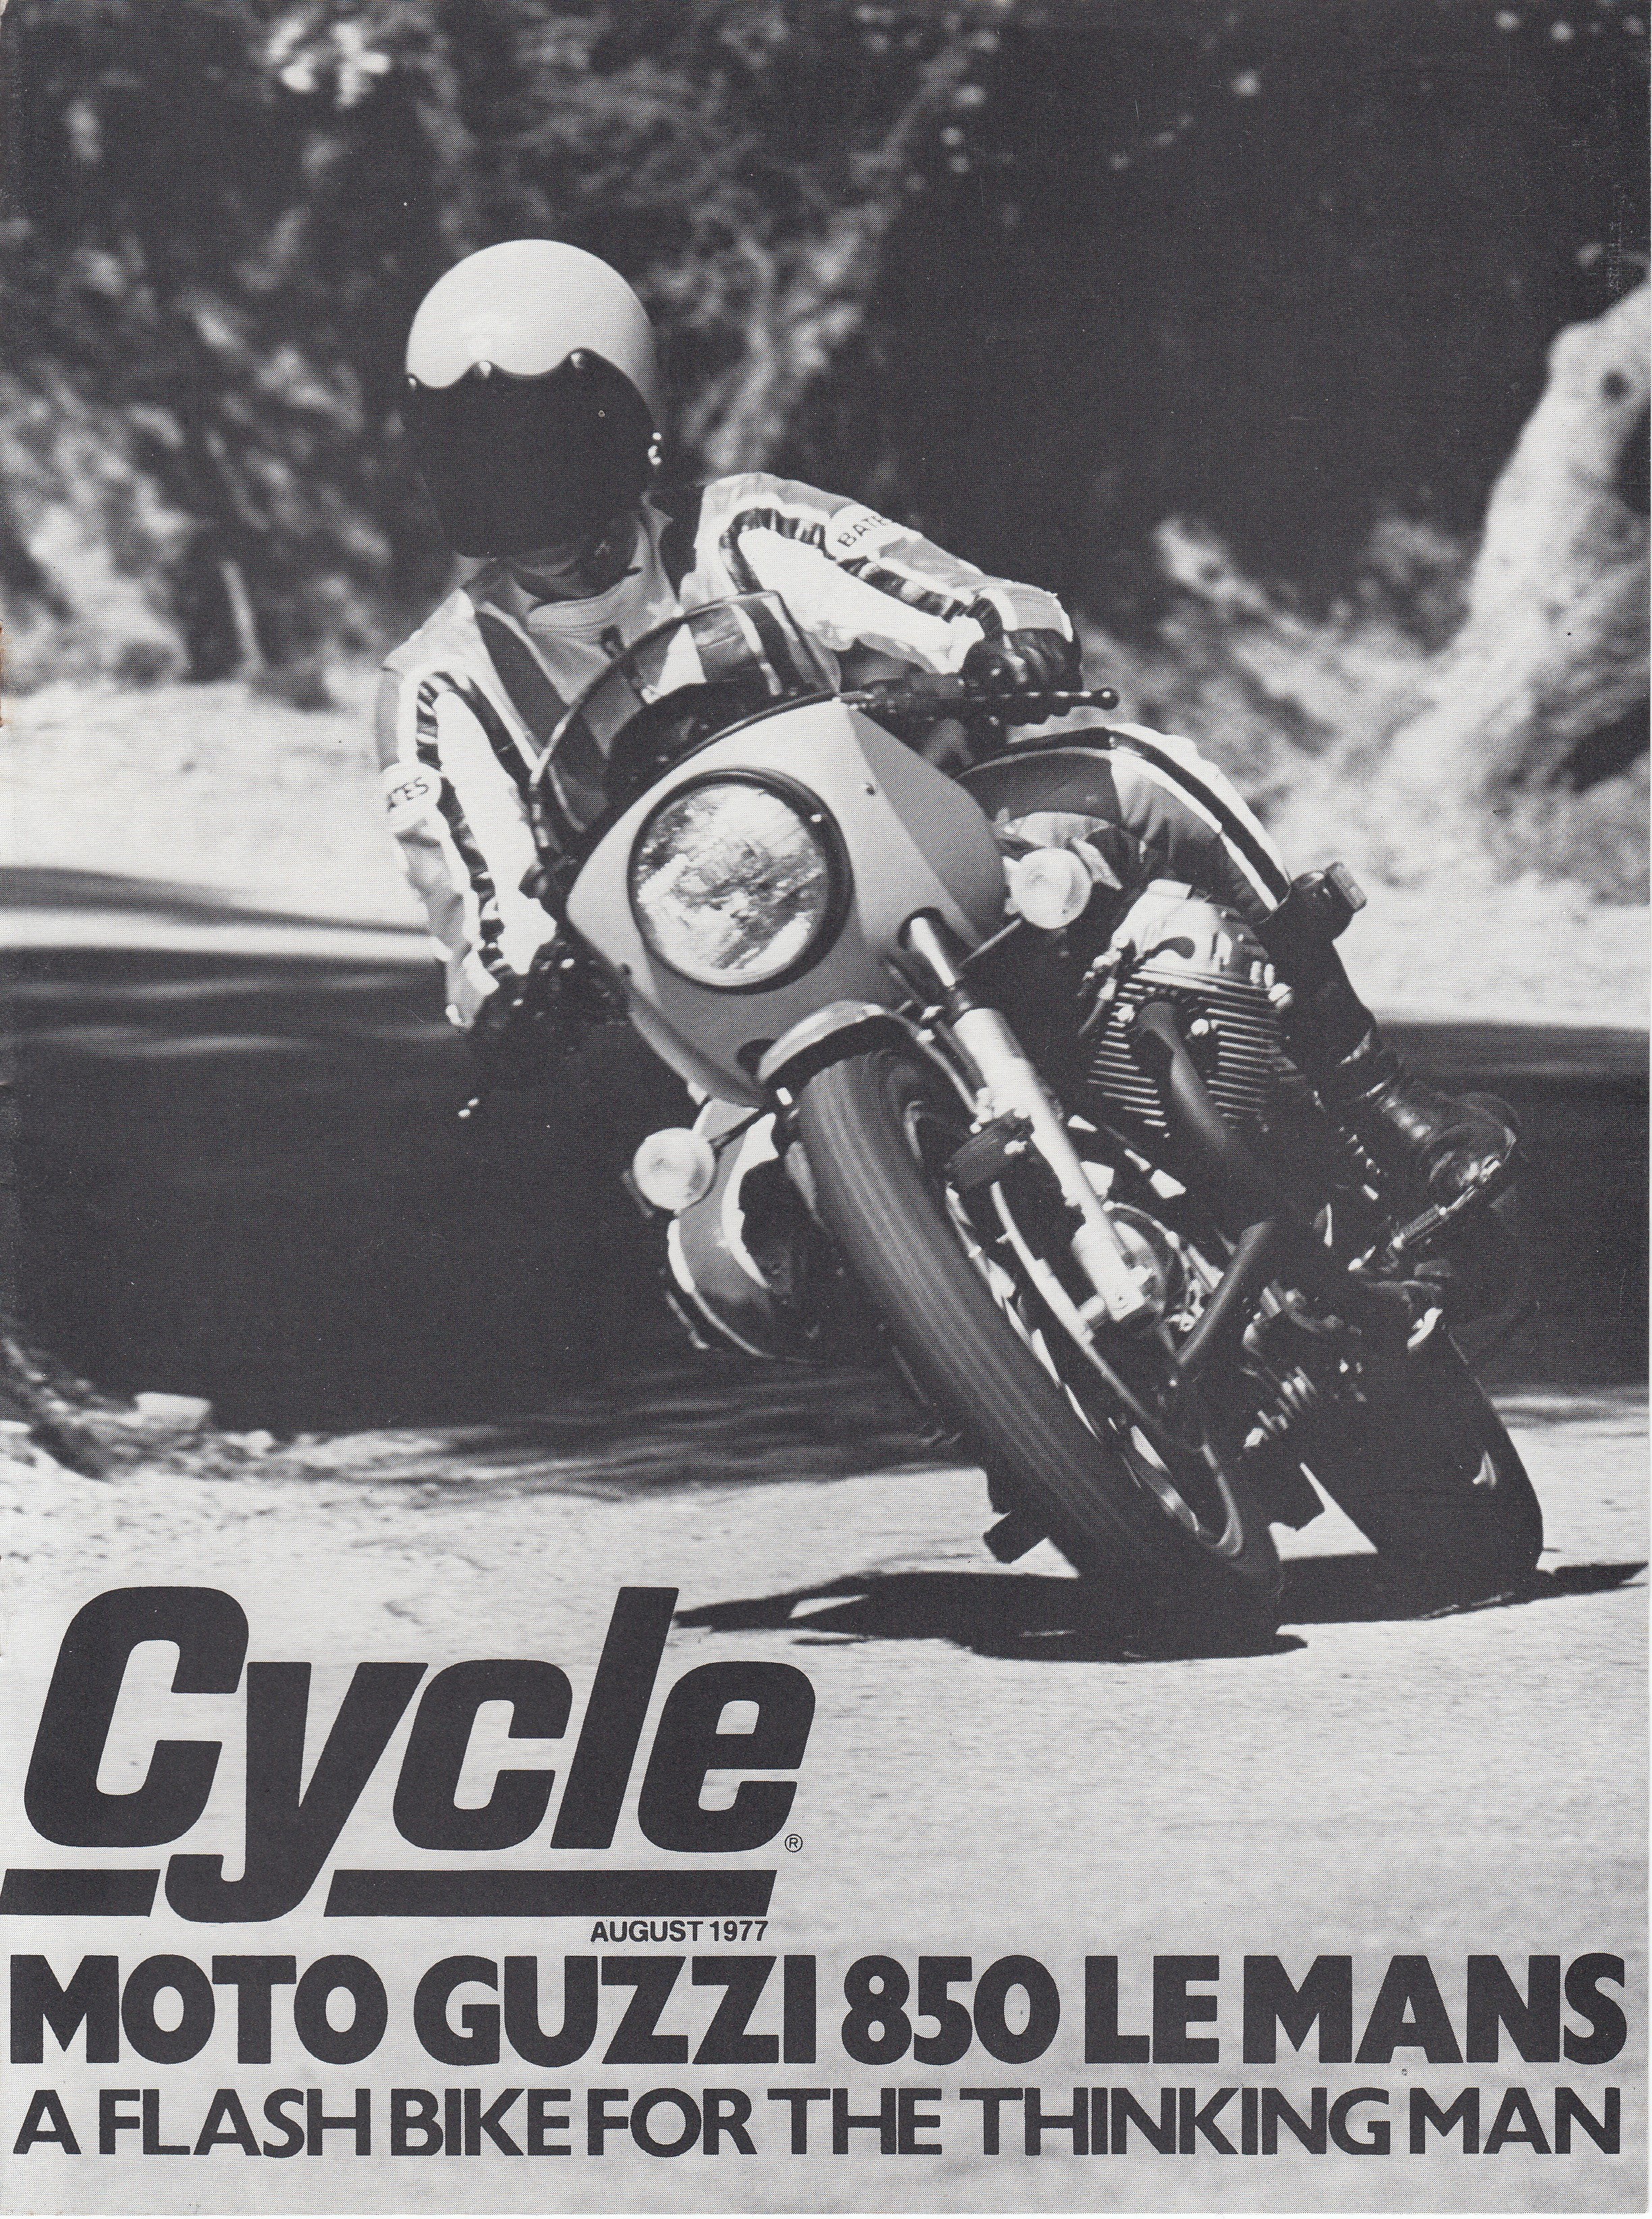 Article - Cycle (1977 August) Moto Guzzi 850 Le Mans - A flash bike for the thinking man